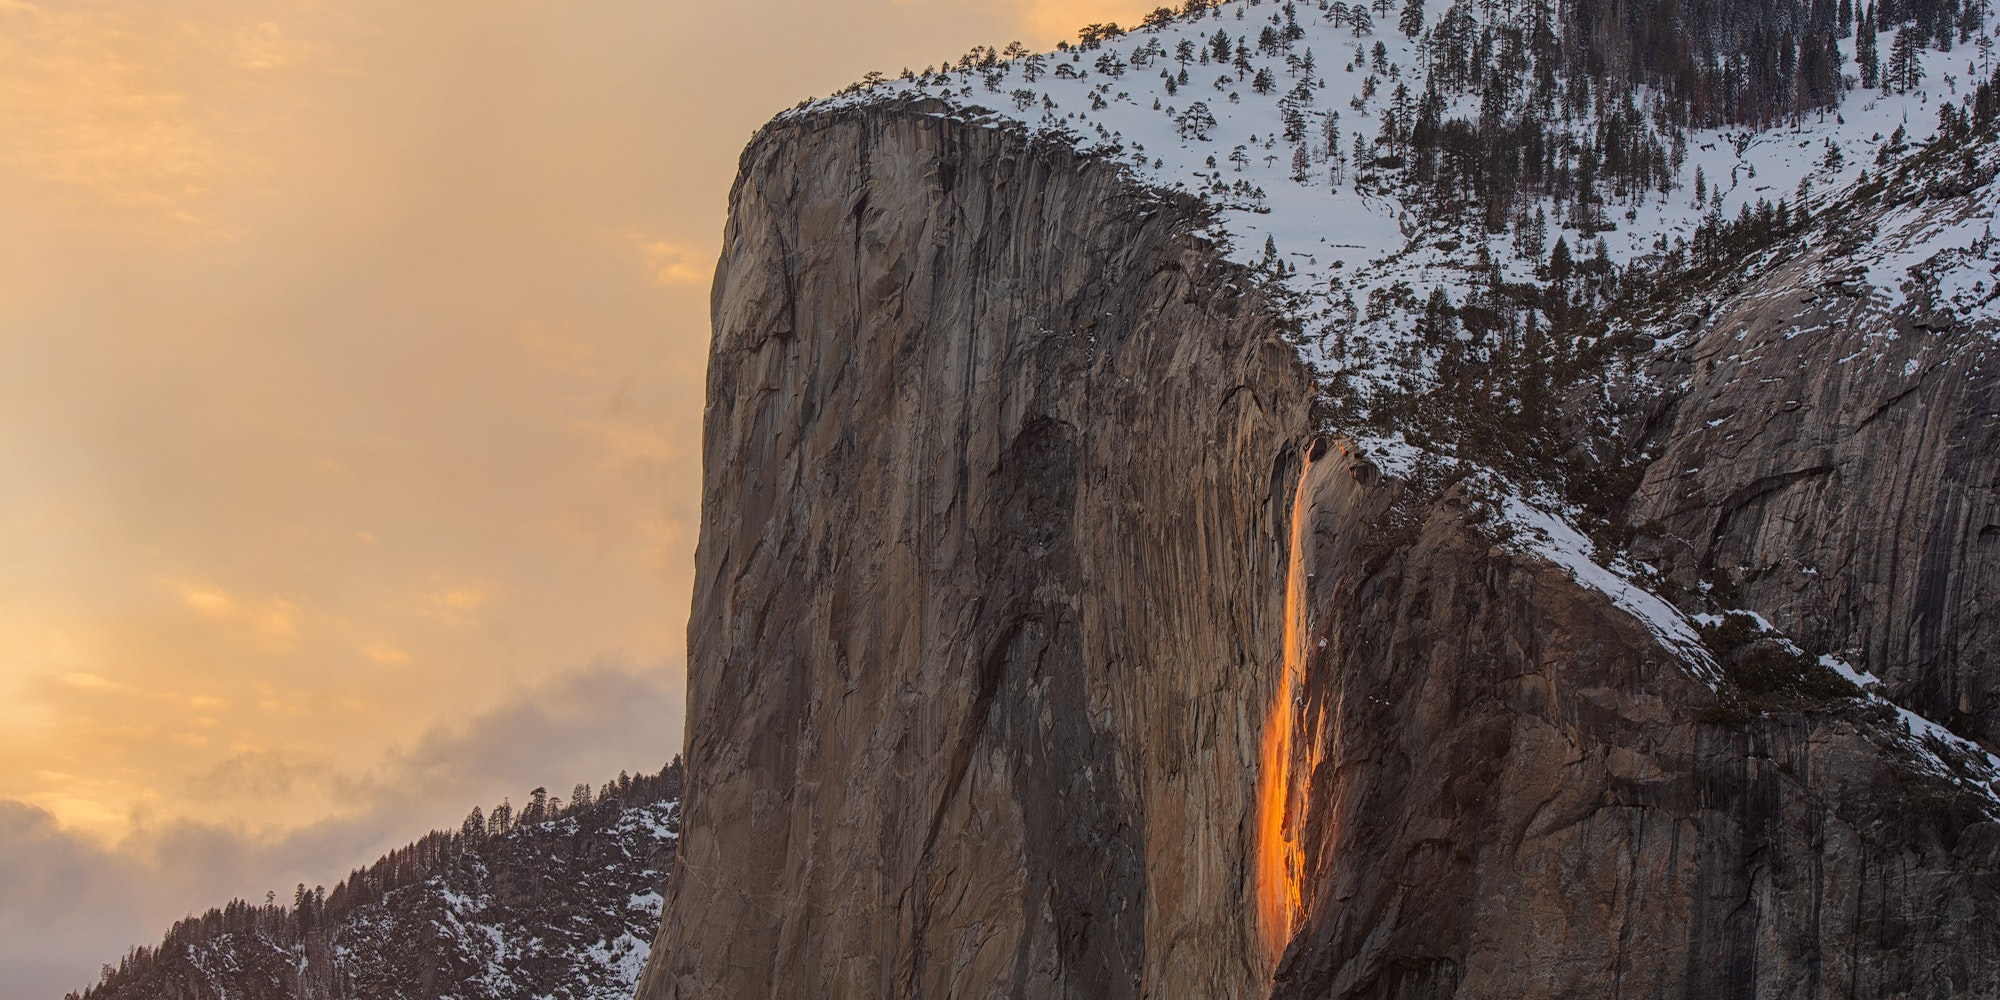 Spectacularly Fiery Optical Illusion Makes Its Annual Return to Yosemite